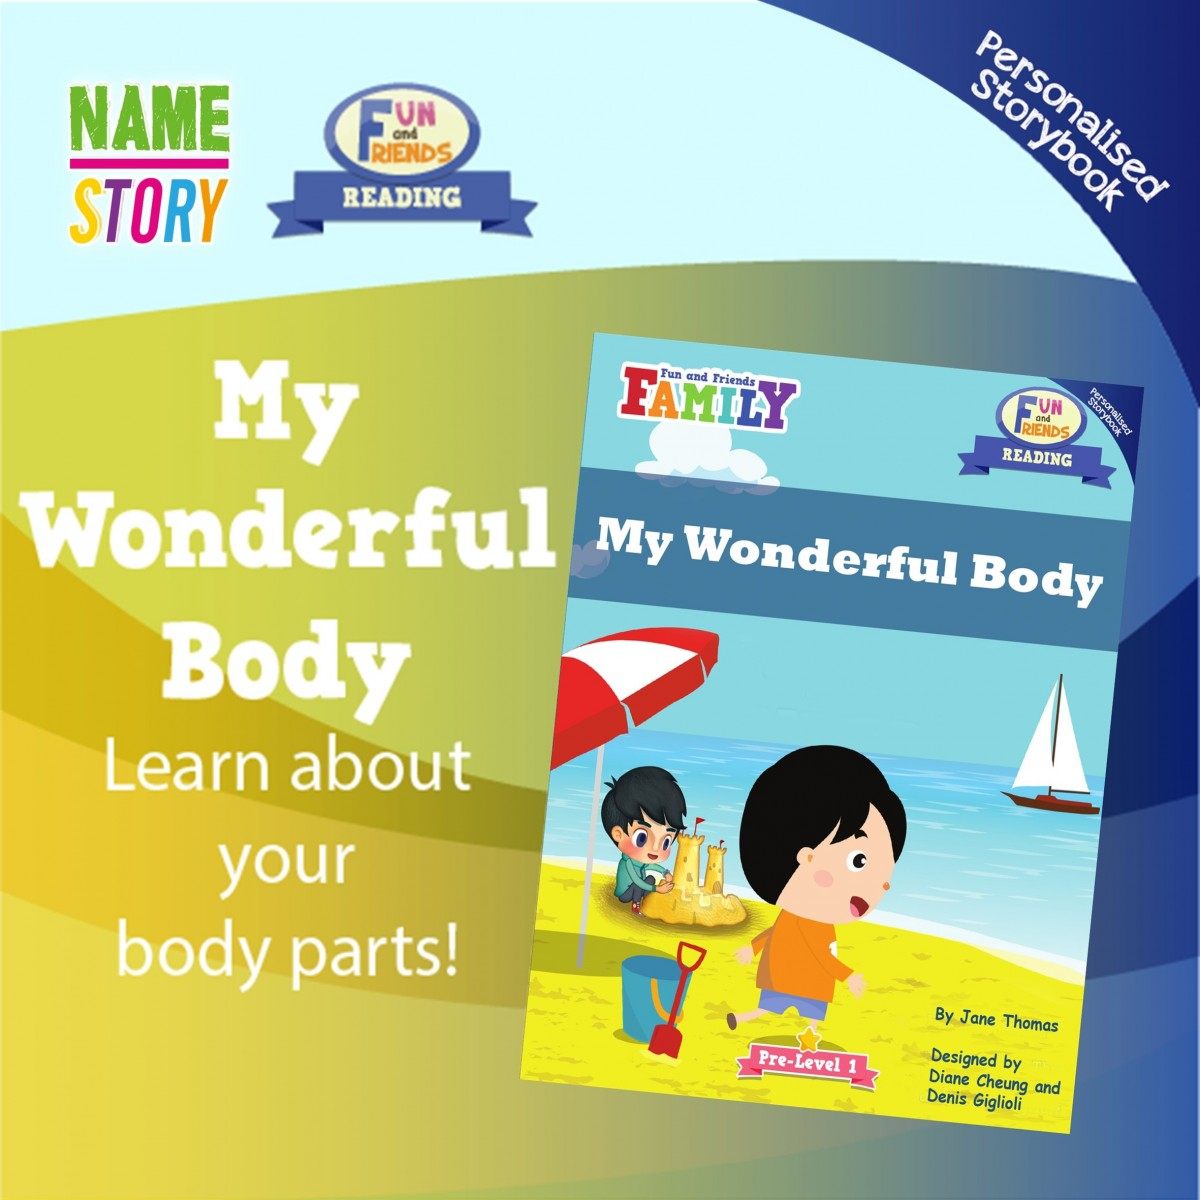 WMJ05-My Wonderful Body